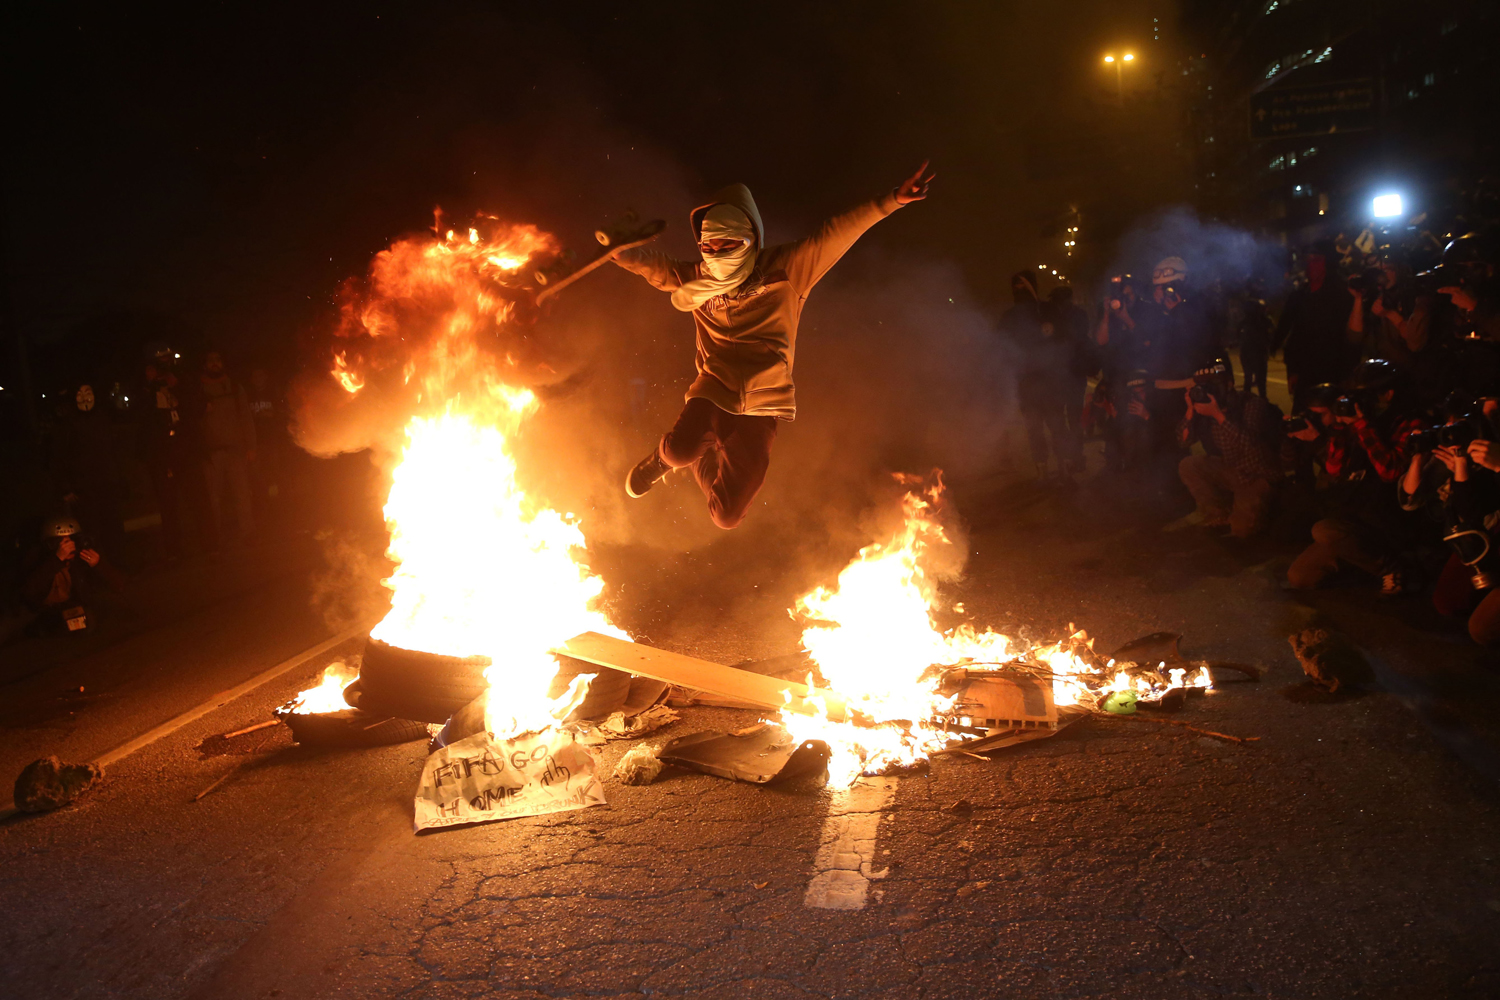 A protester jumps over a fire barricade during a protest against 2014 FIFA World Cup in Sao Paulo, on June 19, 2014.